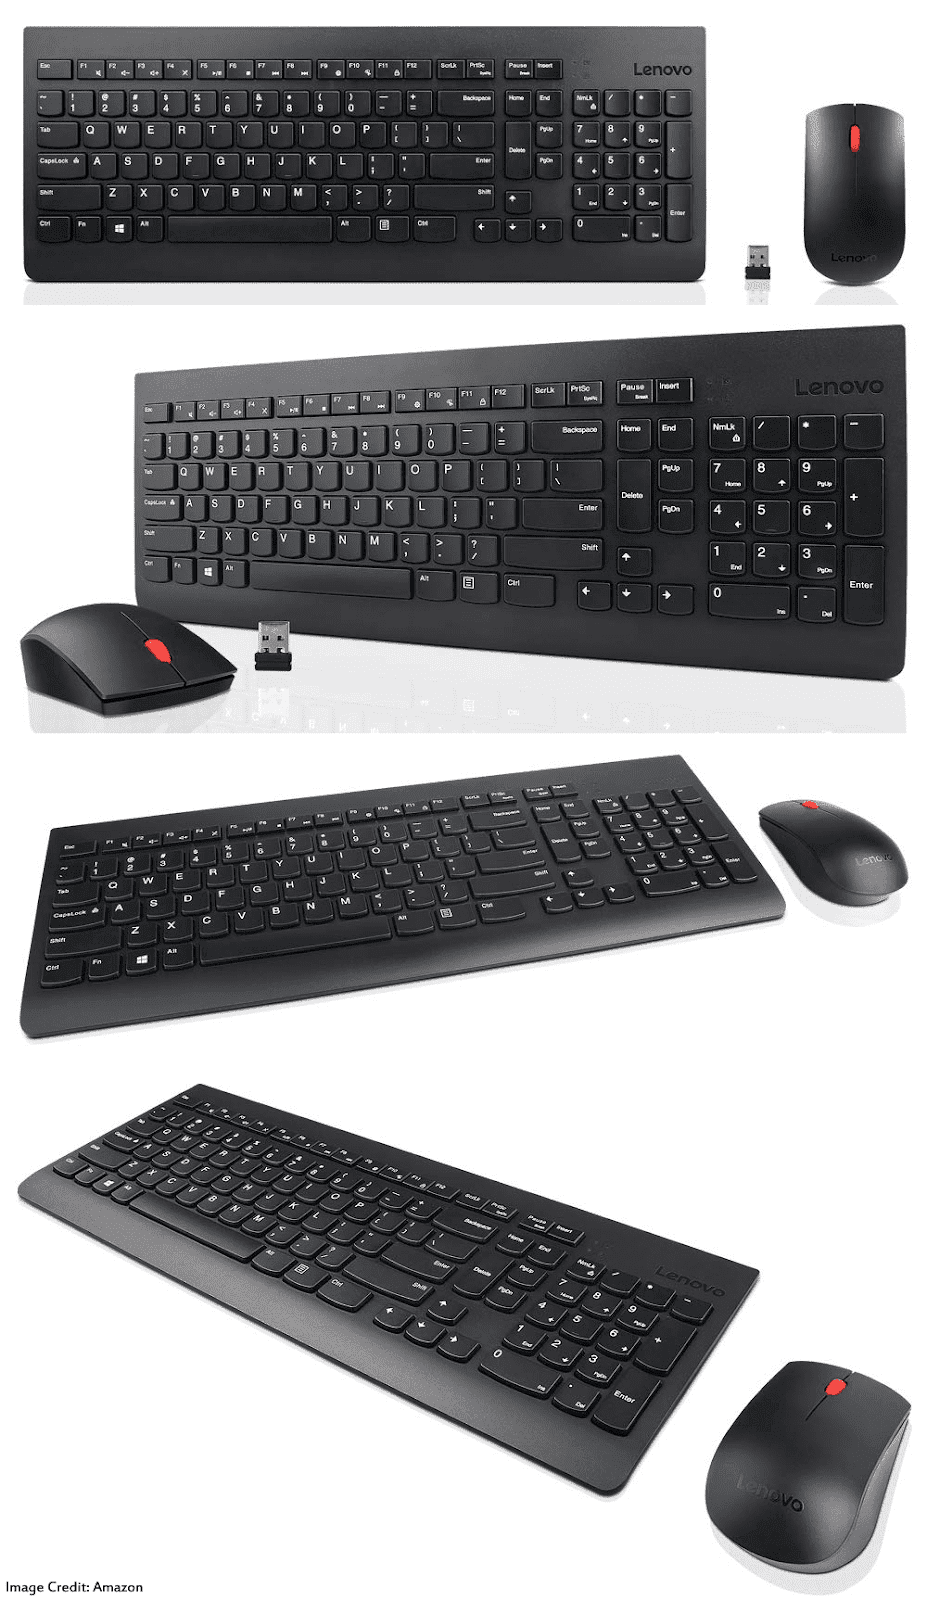 The image of a Lenovo 510 black wireless keyboard and mouse combo. Its color is black. Moreover, this wireless combo comes with a 1 year of warranty.